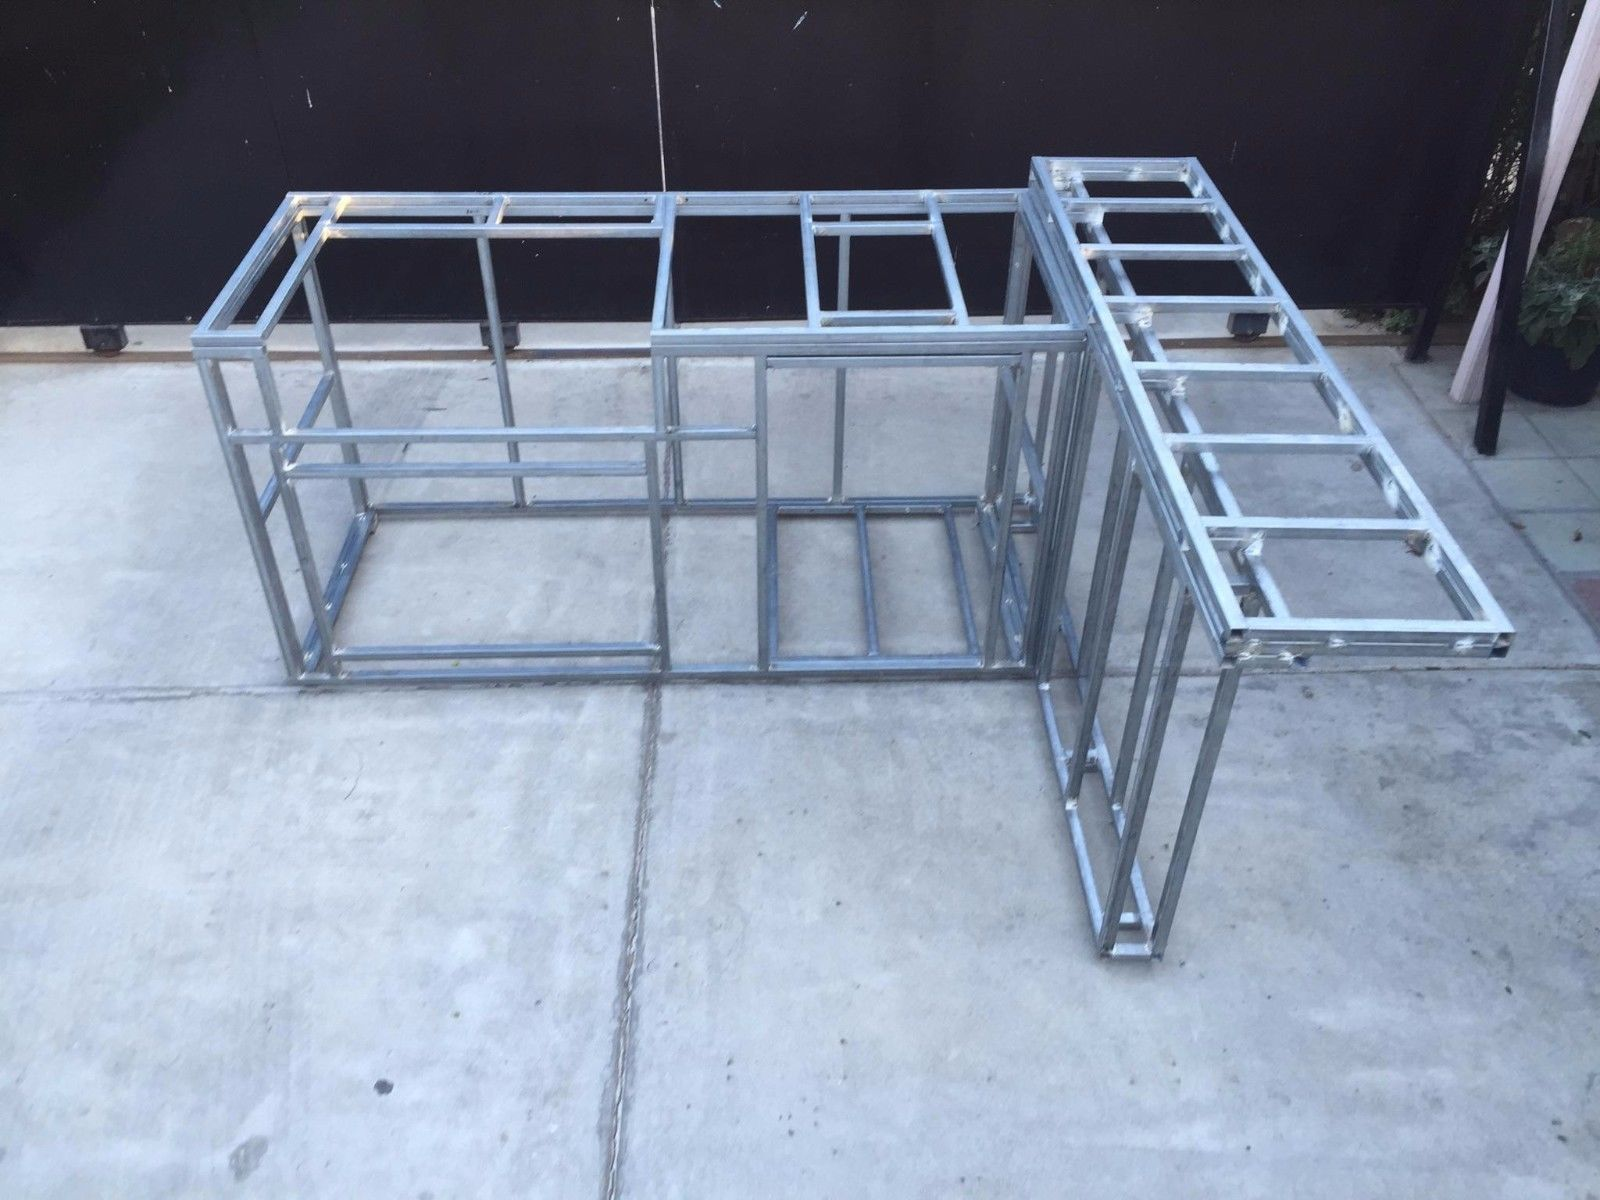 A Knock Down Bbq Frame For You To Build As You Like Our Kits Are Made Of 16 Gauge Galvanized T Outdoor Kitchen Kits Diy Outdoor Kitchen Outdoor Fireplace Kits